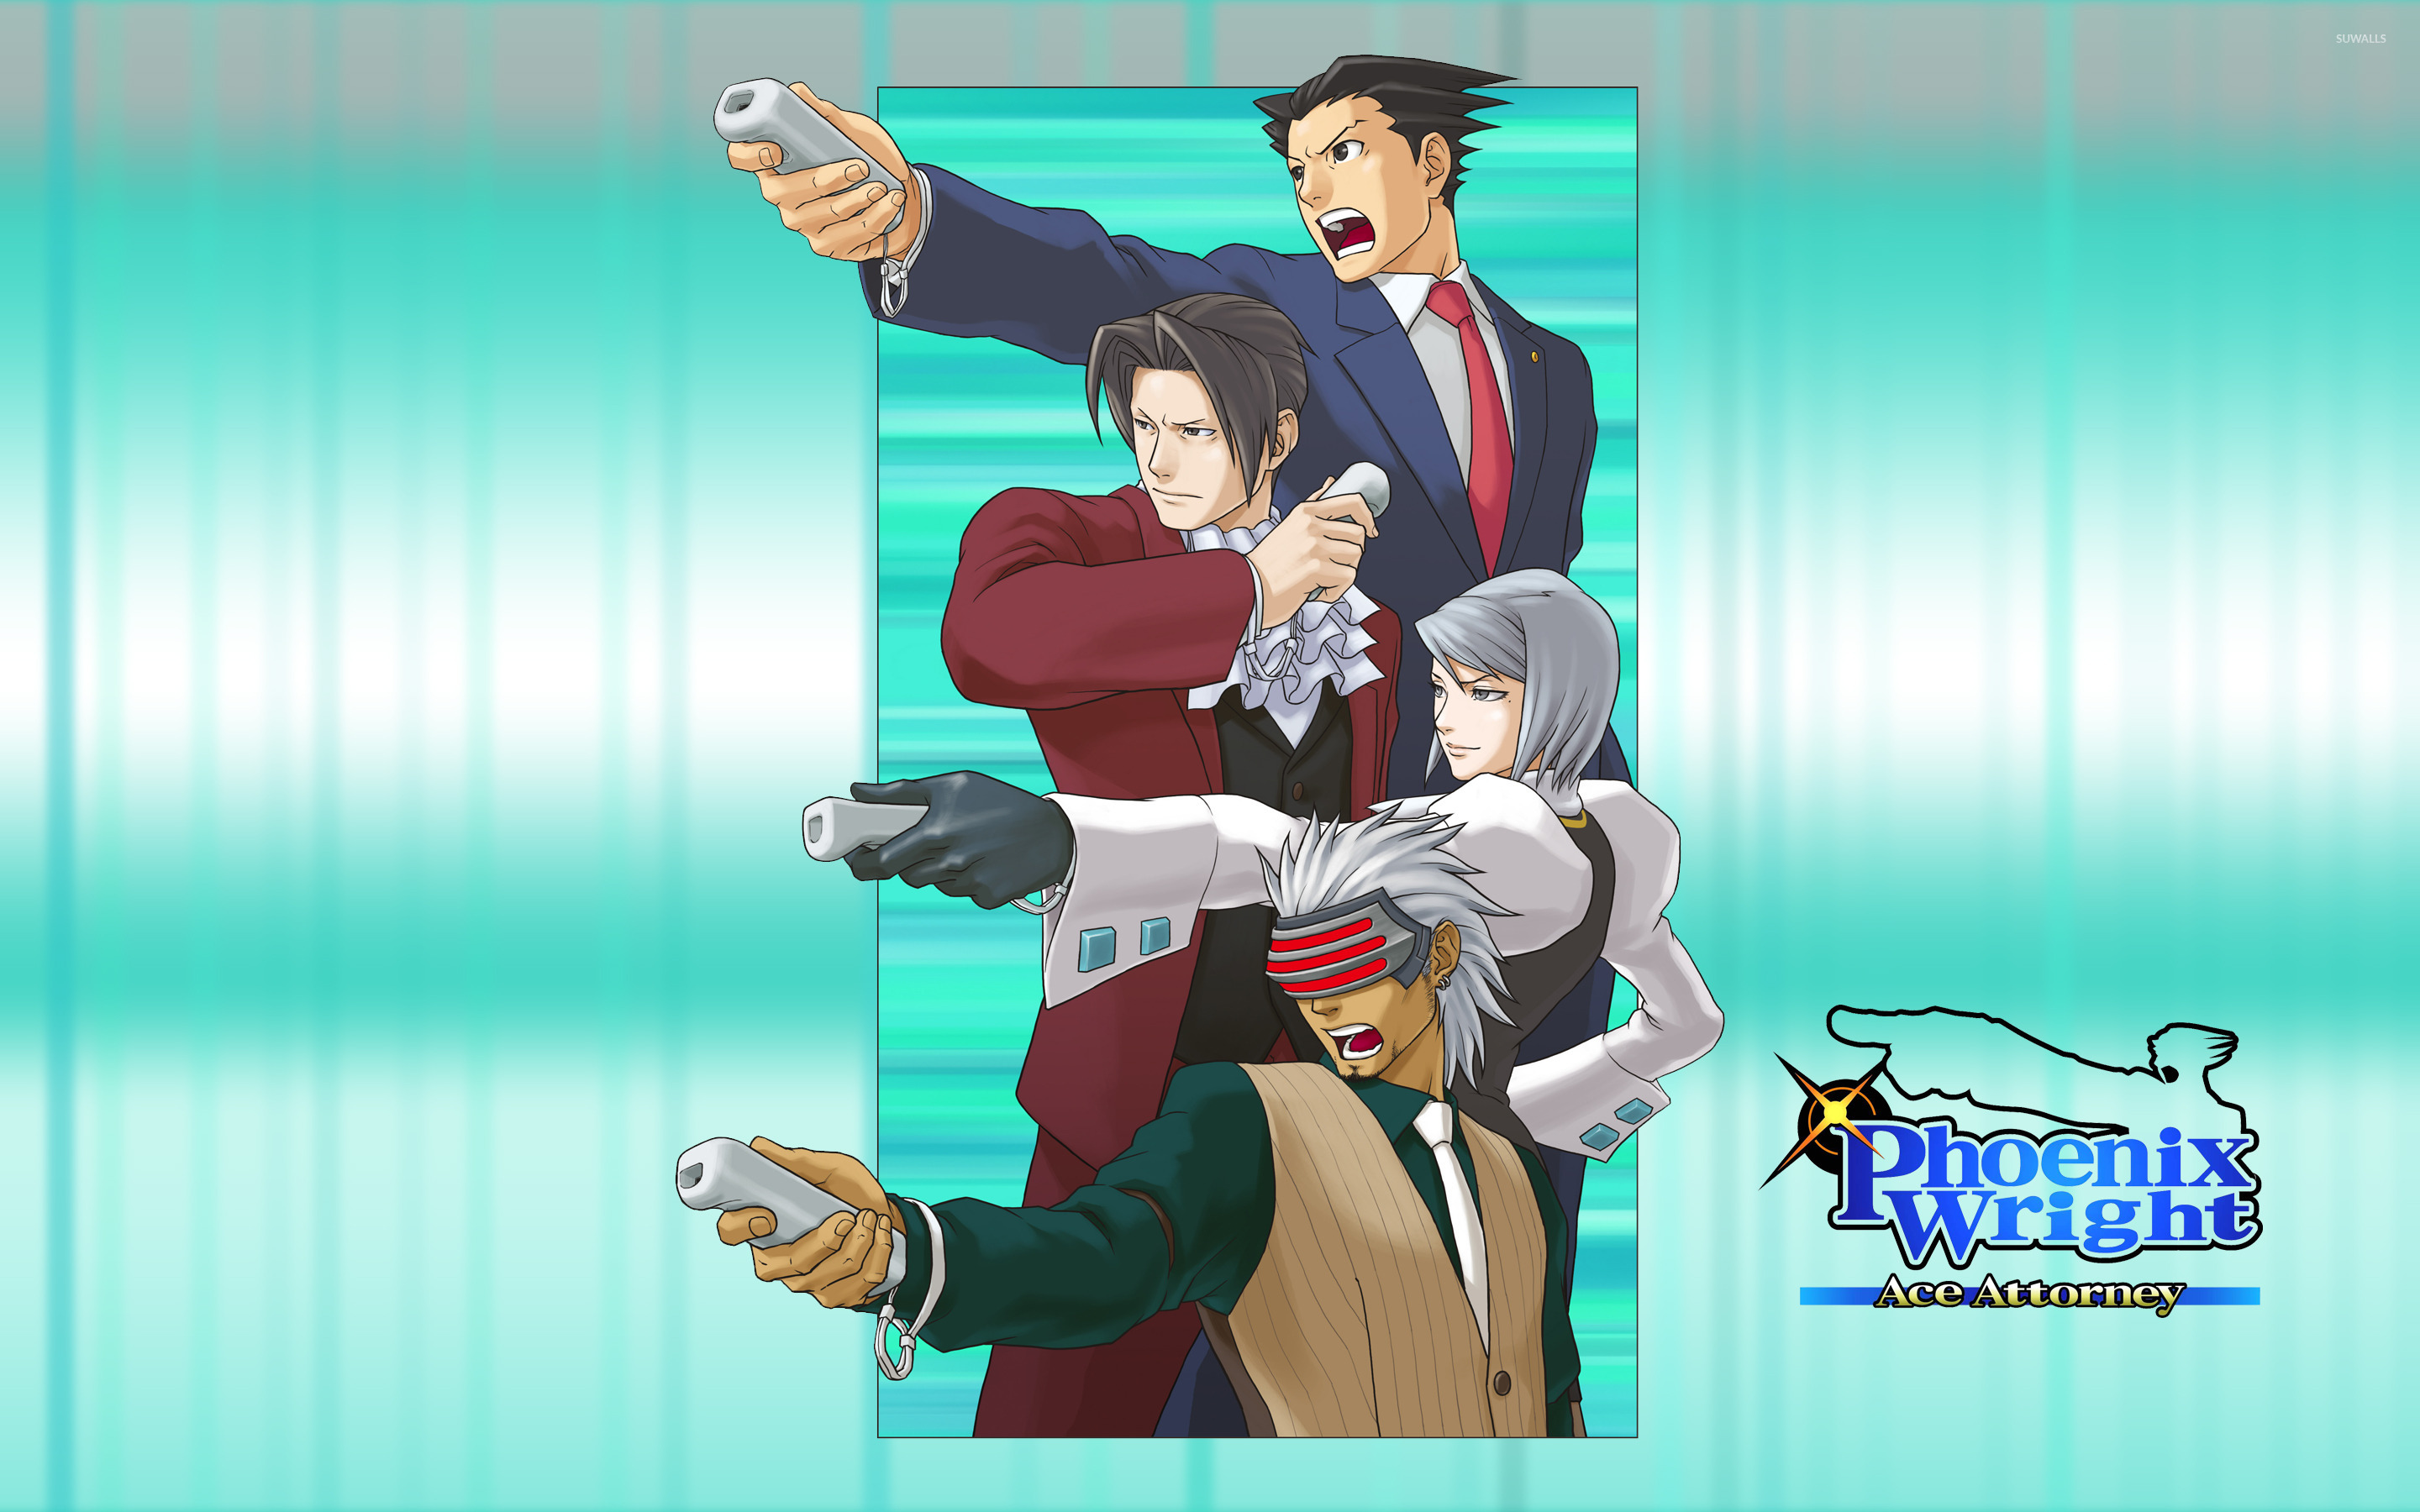 Phoenix Wright Ace Attorney 2 Wallpaper